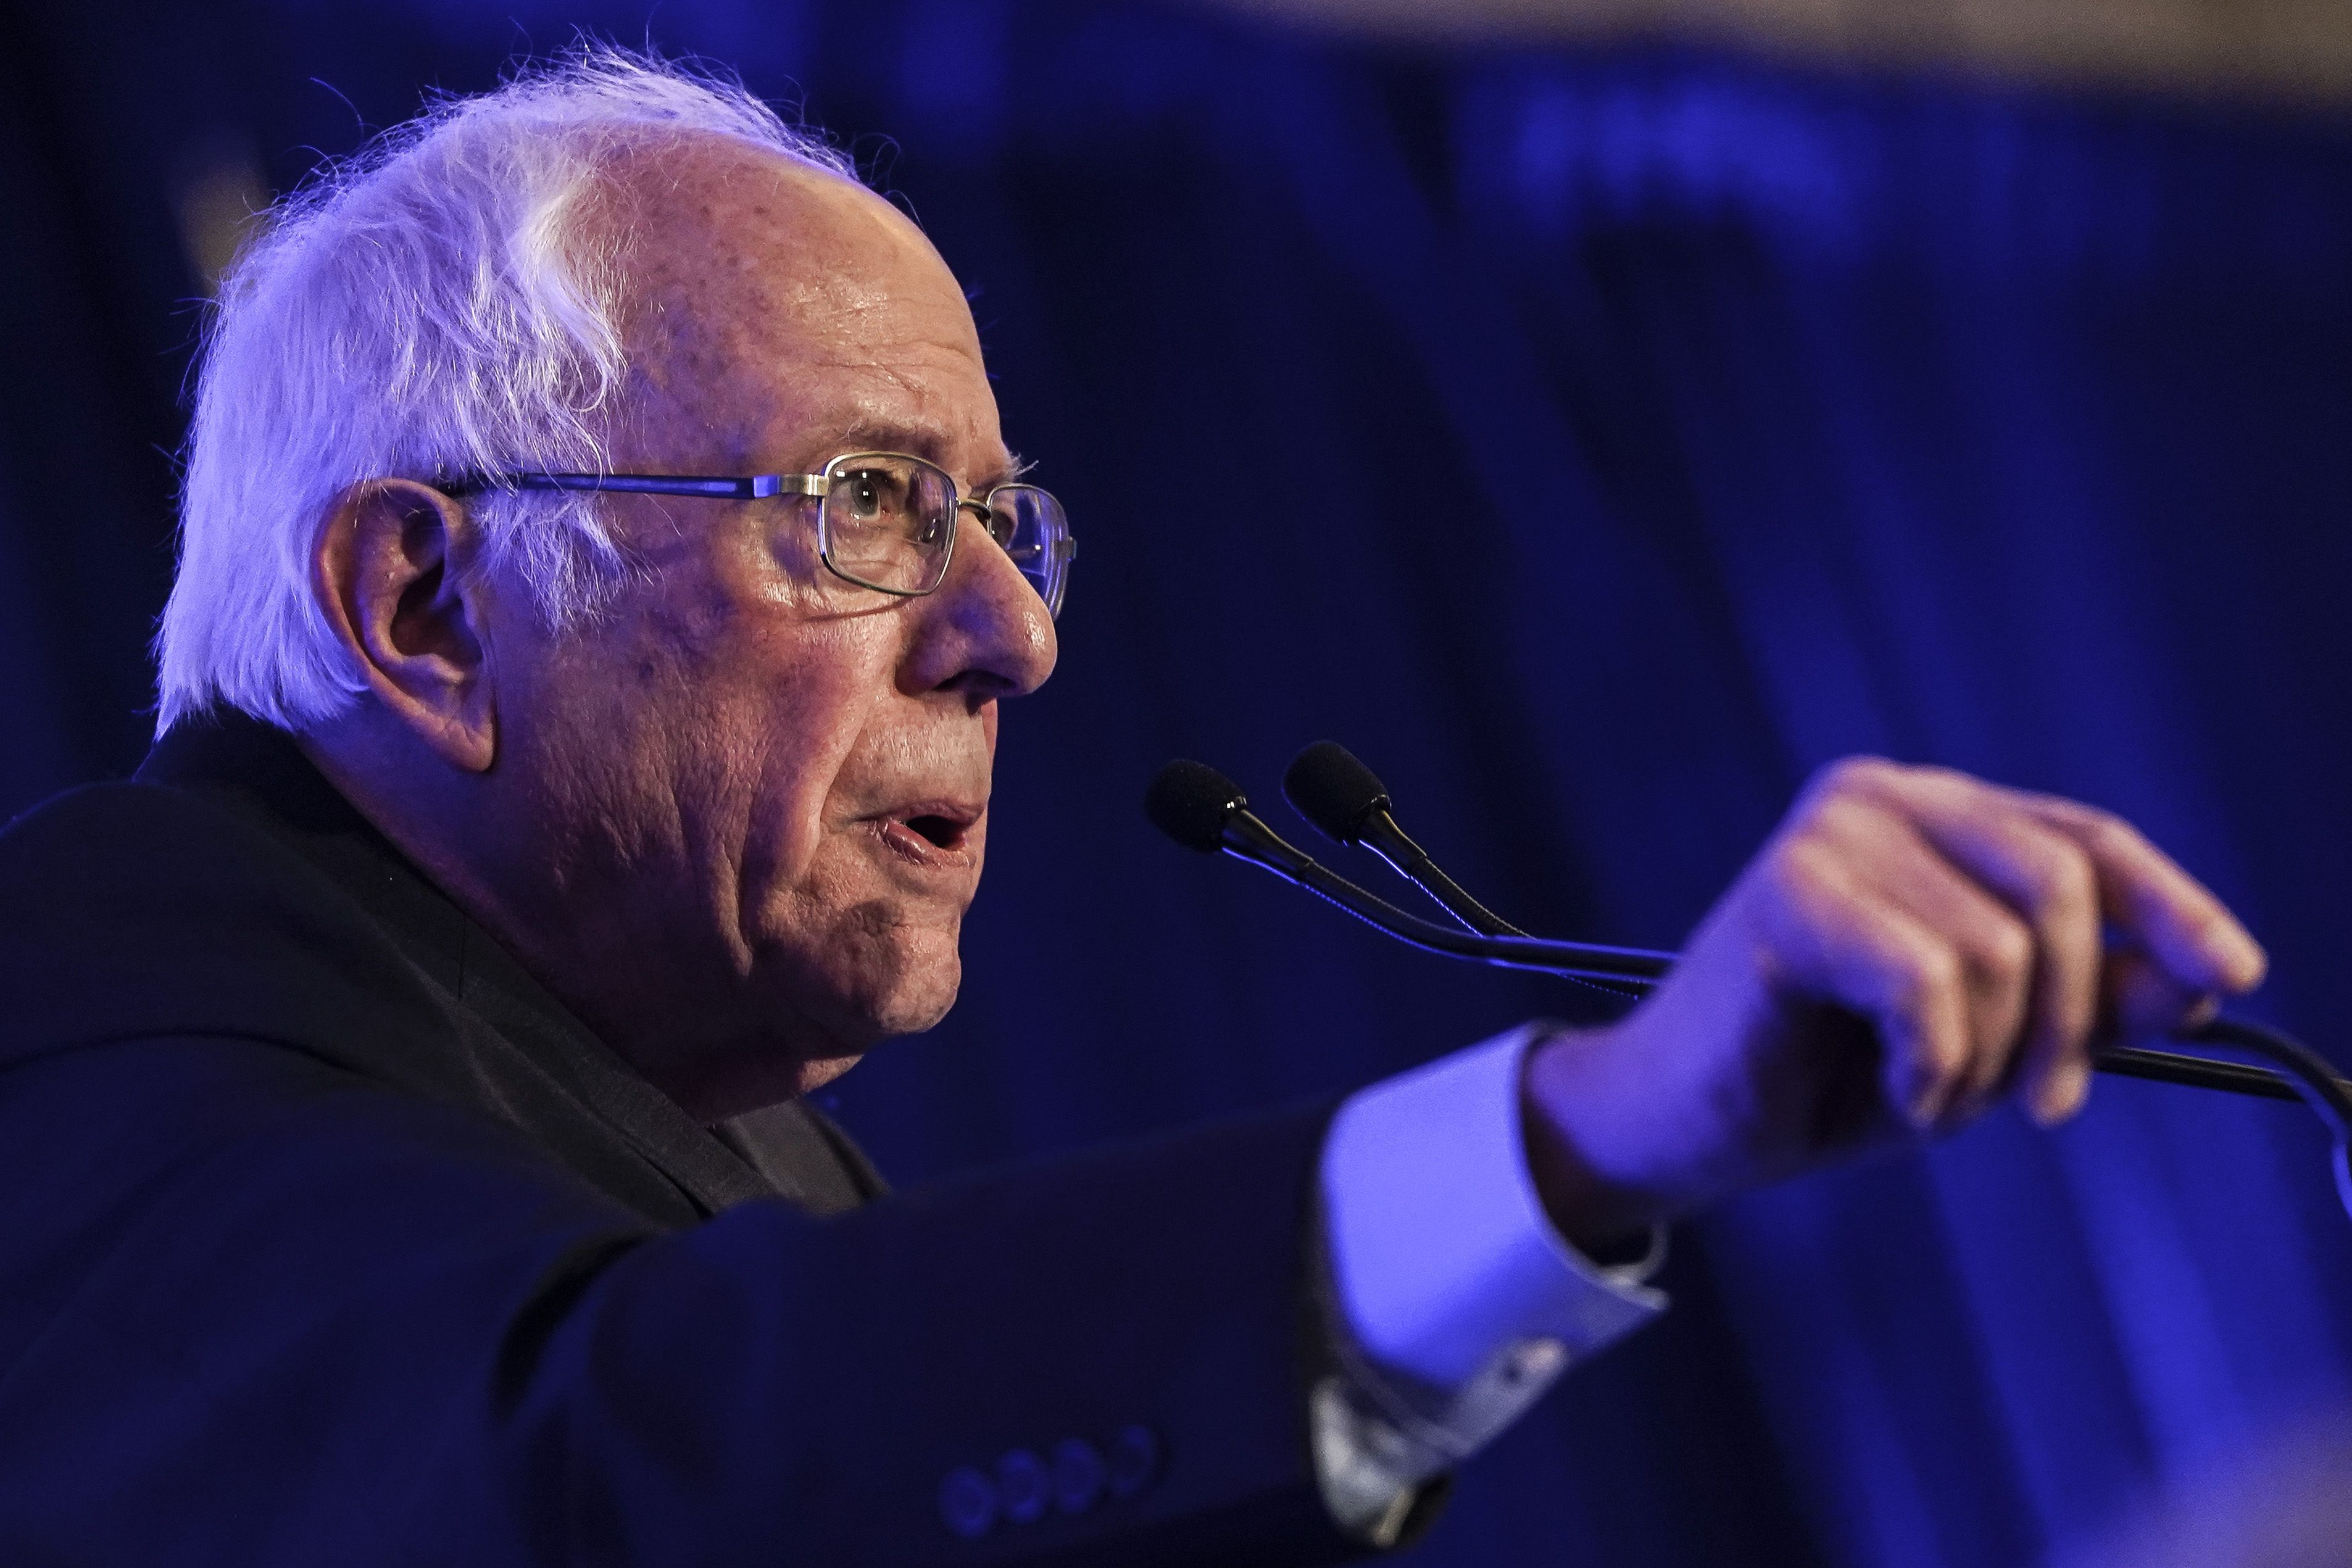 2 Florida Democrats sue to disqualify Sanders from state primary - Axios